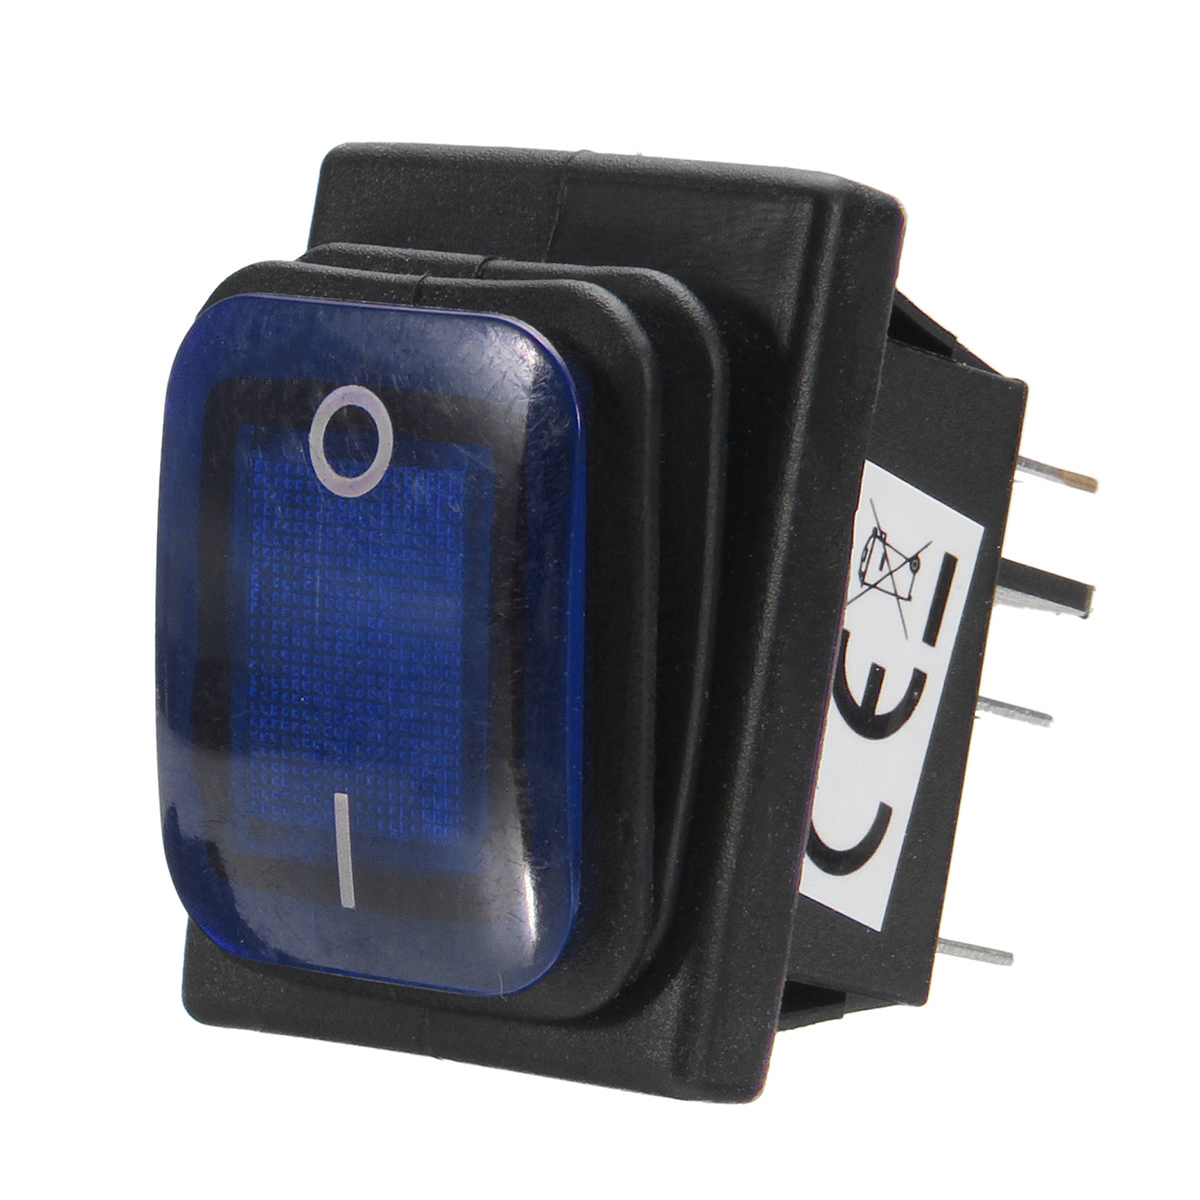 ON/OFF 12V 16A 6 Pin LED Single Rocker Toggle Switch Waterproof SPST For Car Boat